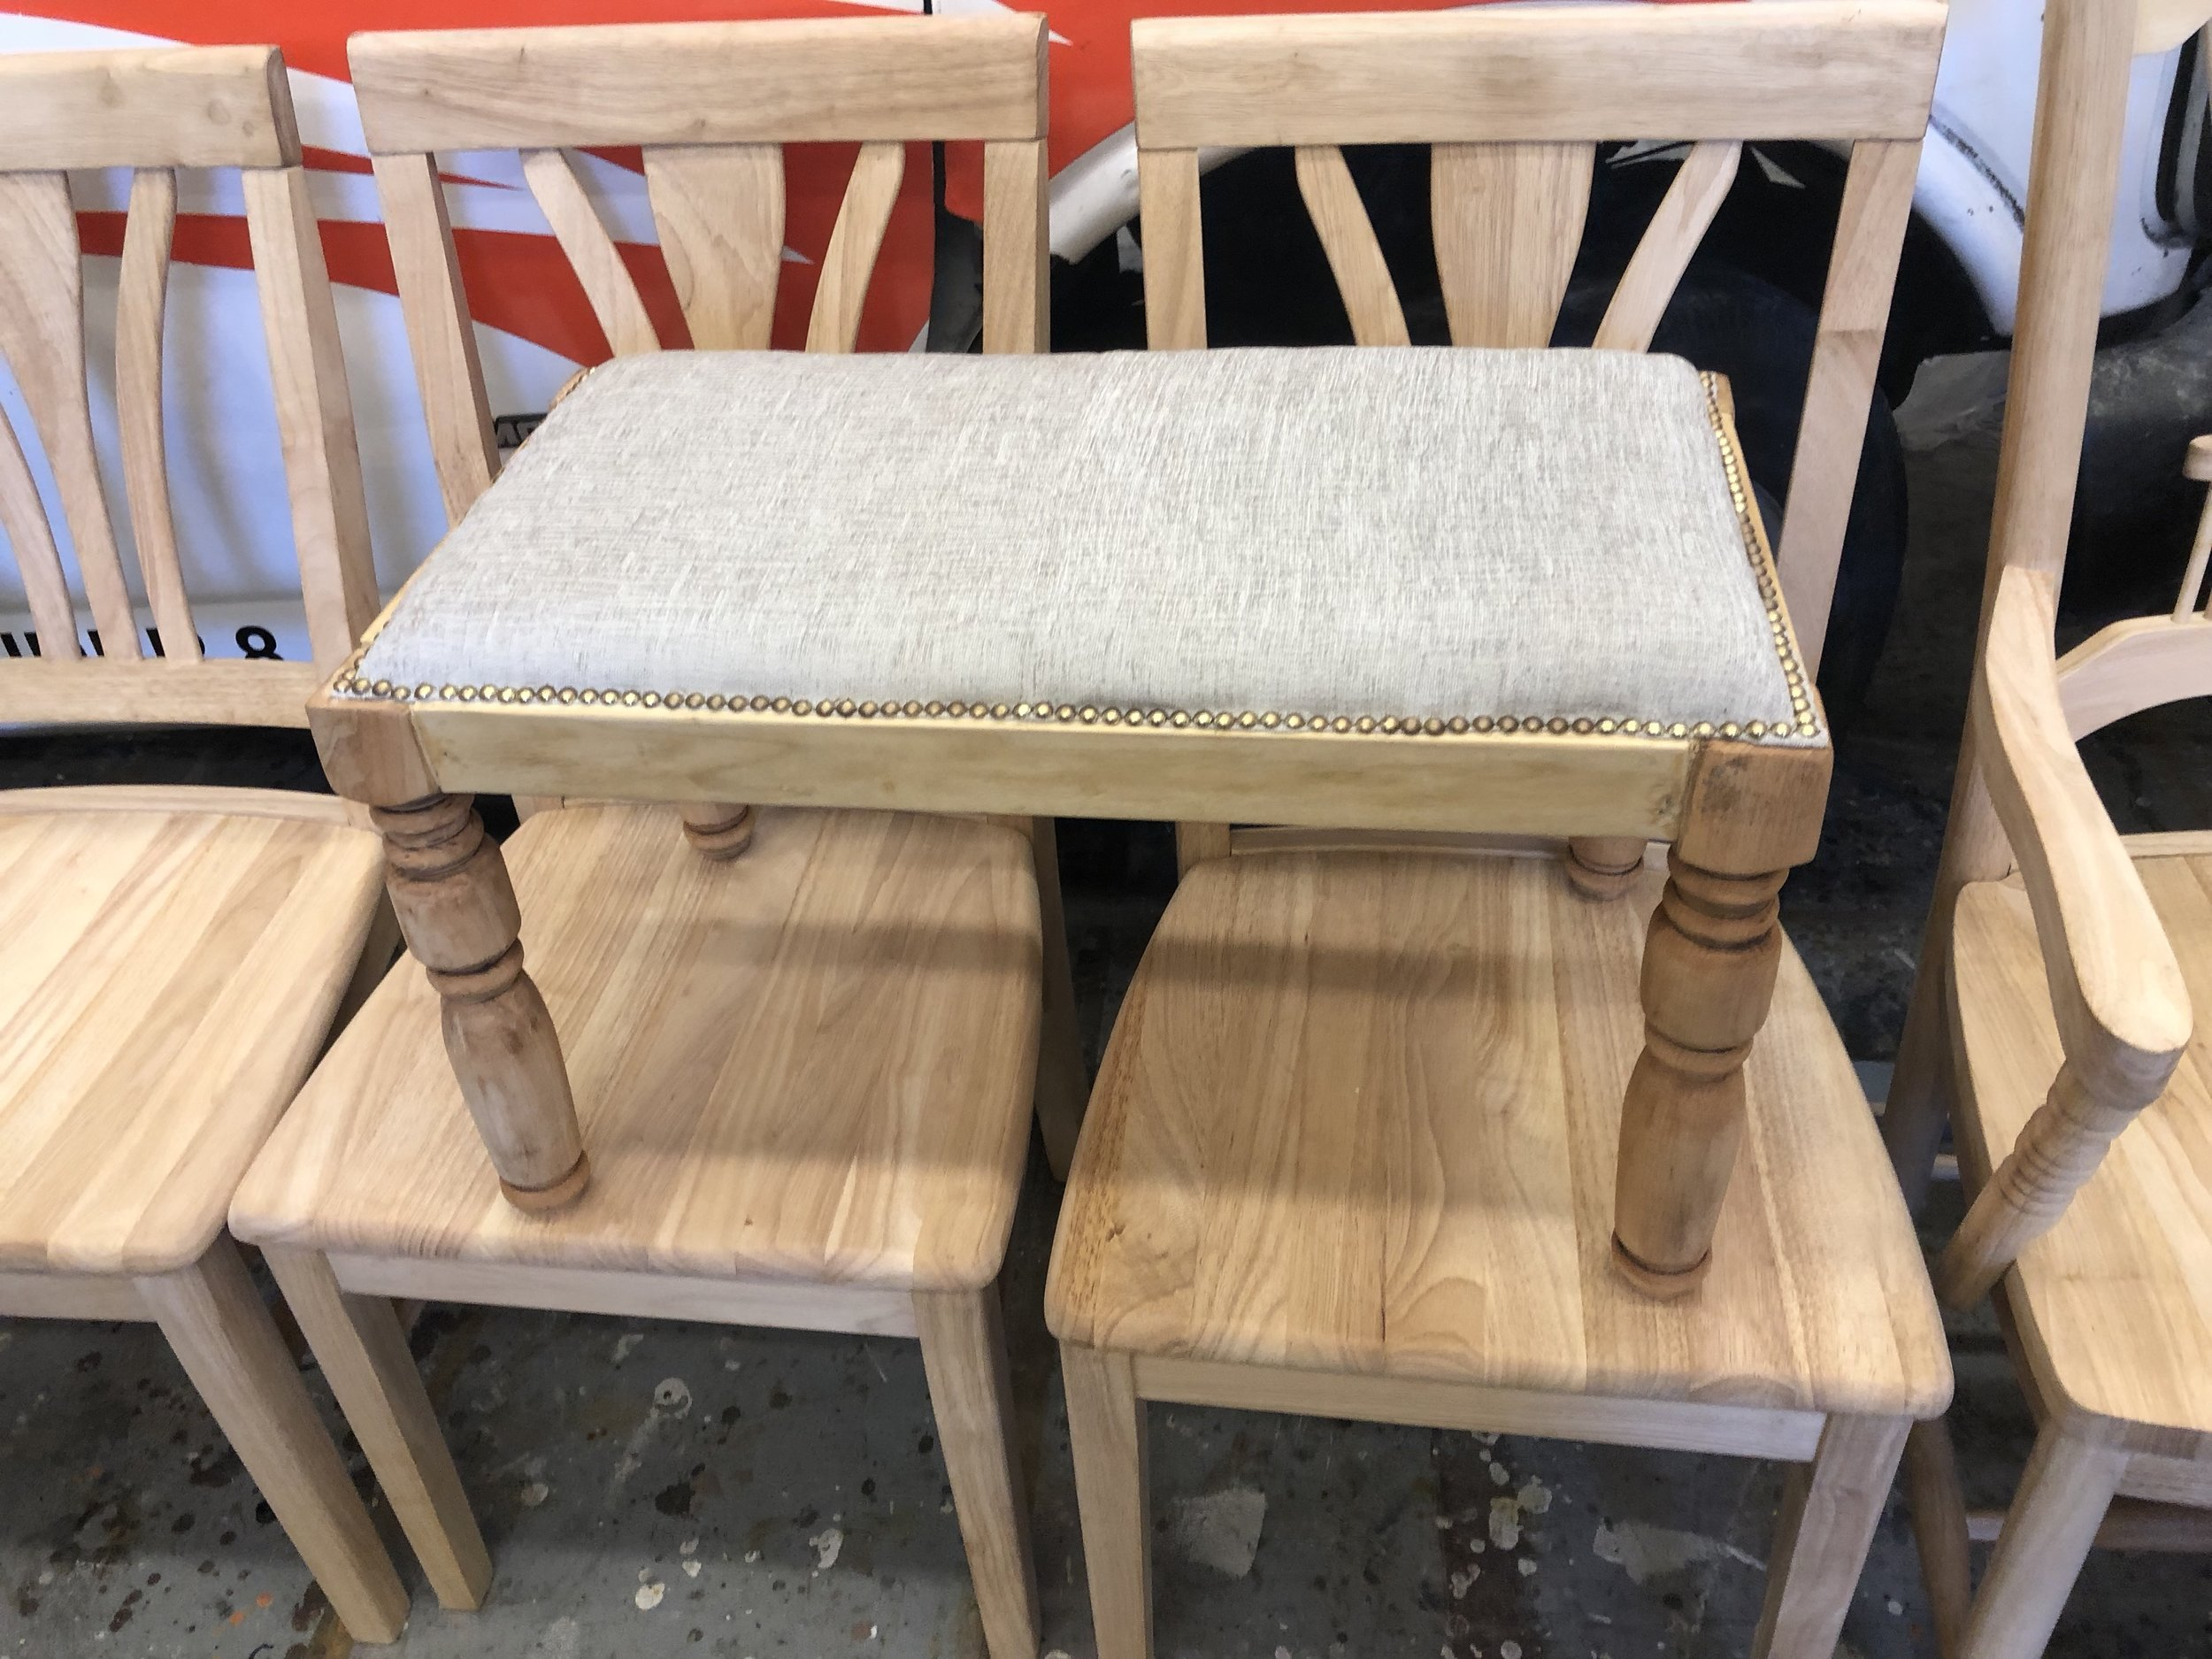 Finished Stool